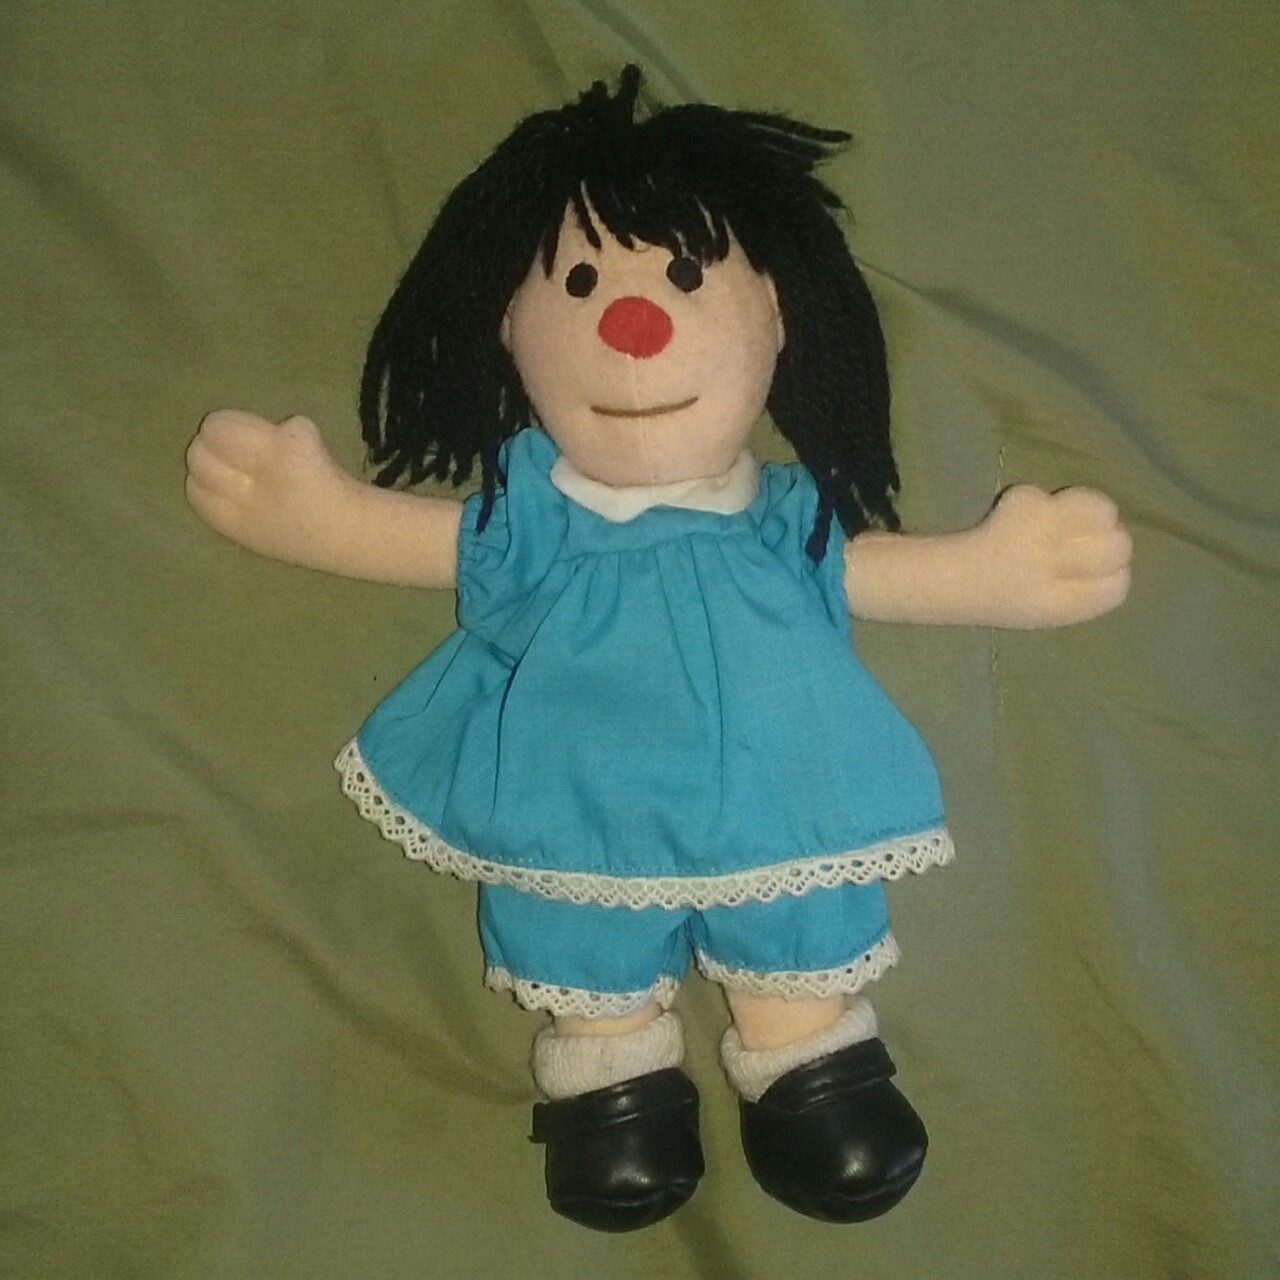 Big Couch Clown Molly Doll From The Big Comfy Couch Circa 1997 Depop